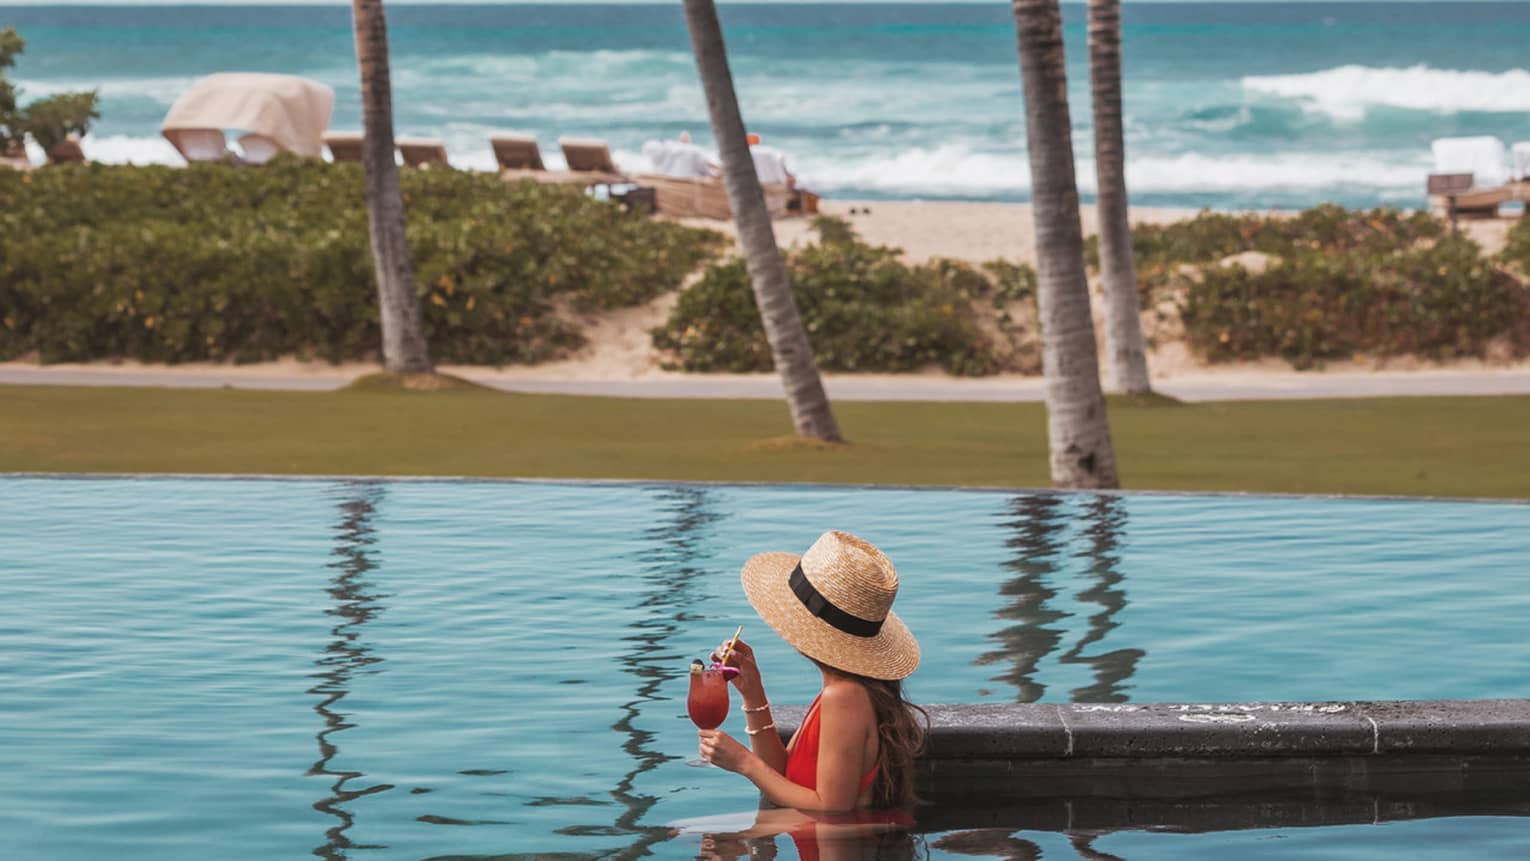 Side view of person in pool wearing straw sunhat and holding drink, ocean view